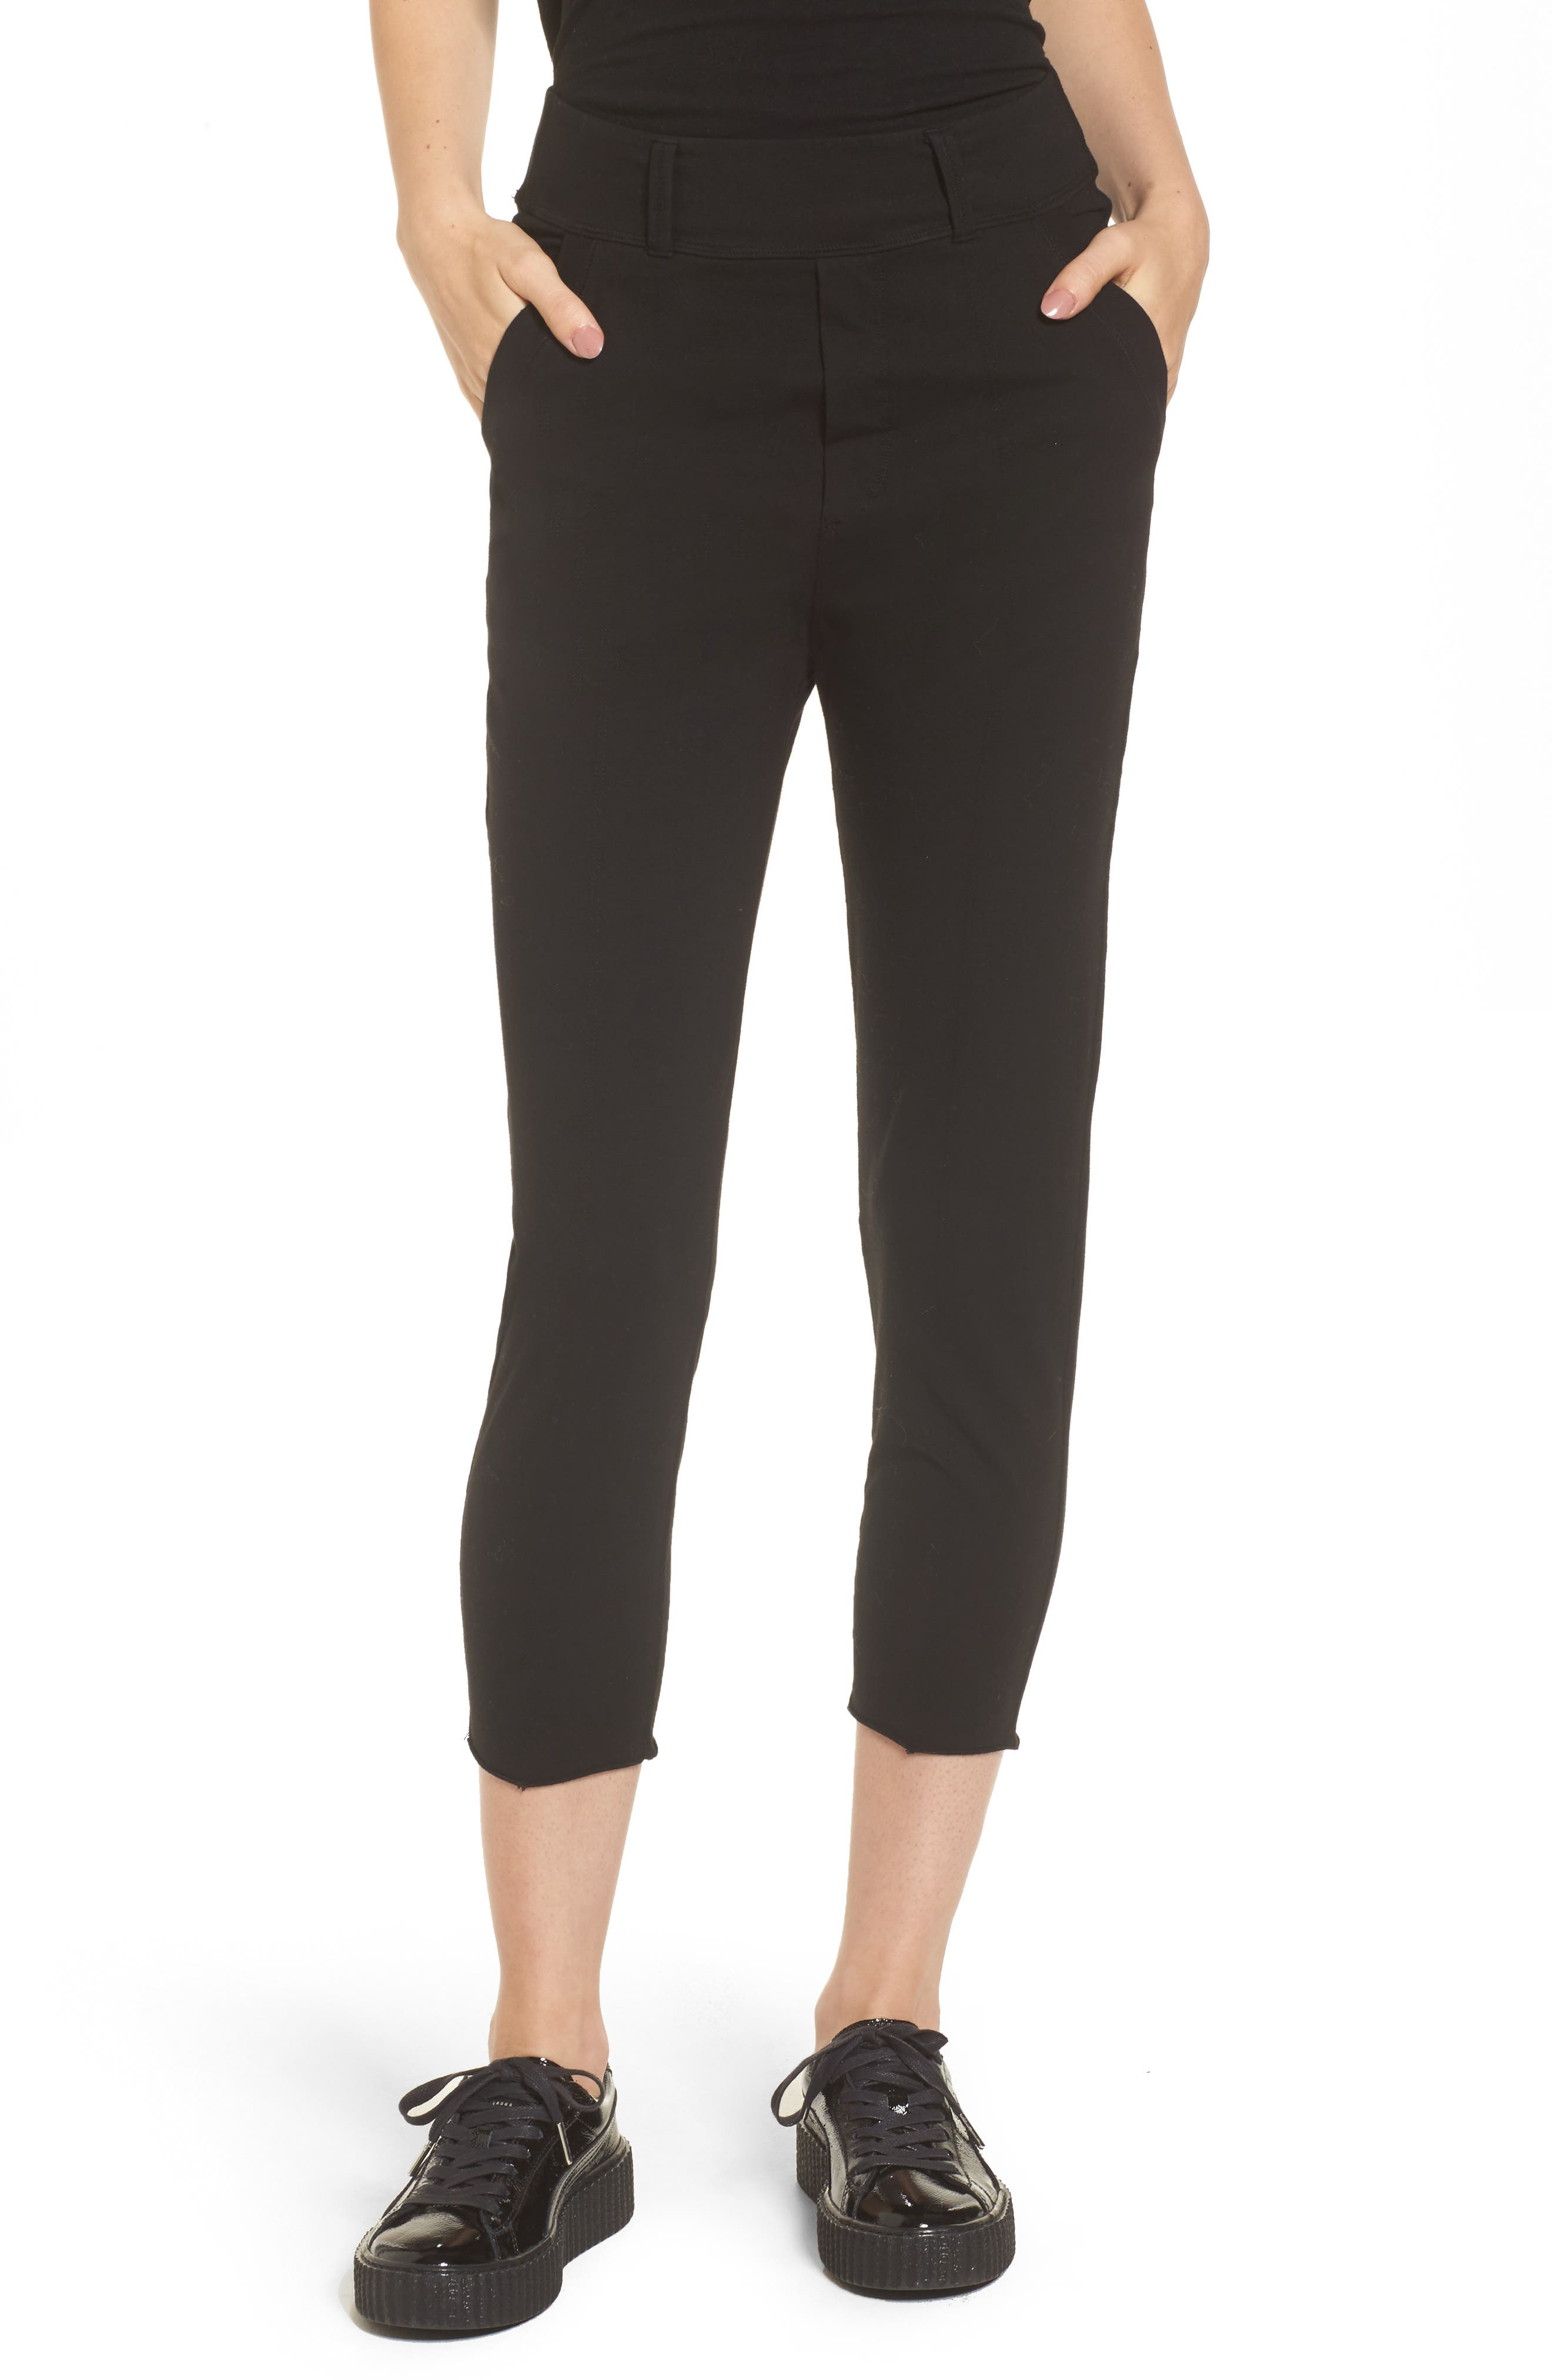 Main Image - Frank & Eileen Tee Lab The Trouser Knit Pants